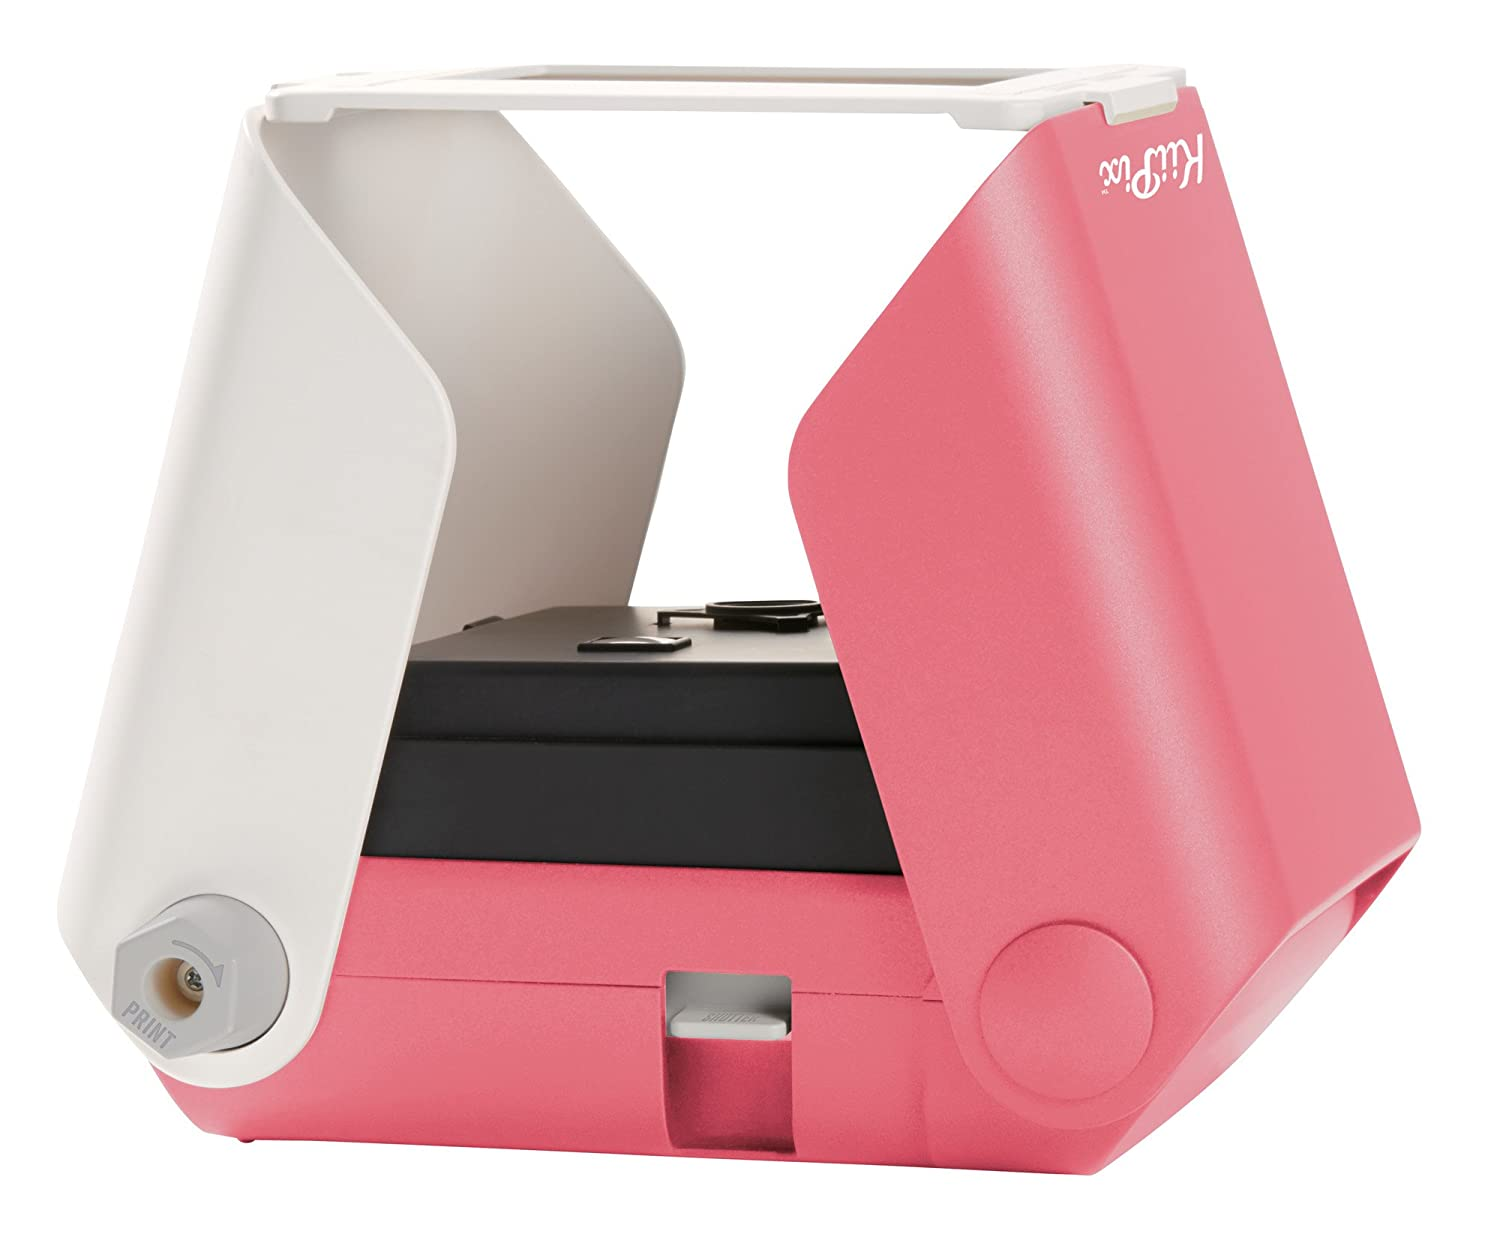 KiiPix Smartphone Picture Printer, Pink Tomy International (Camera) E72753US